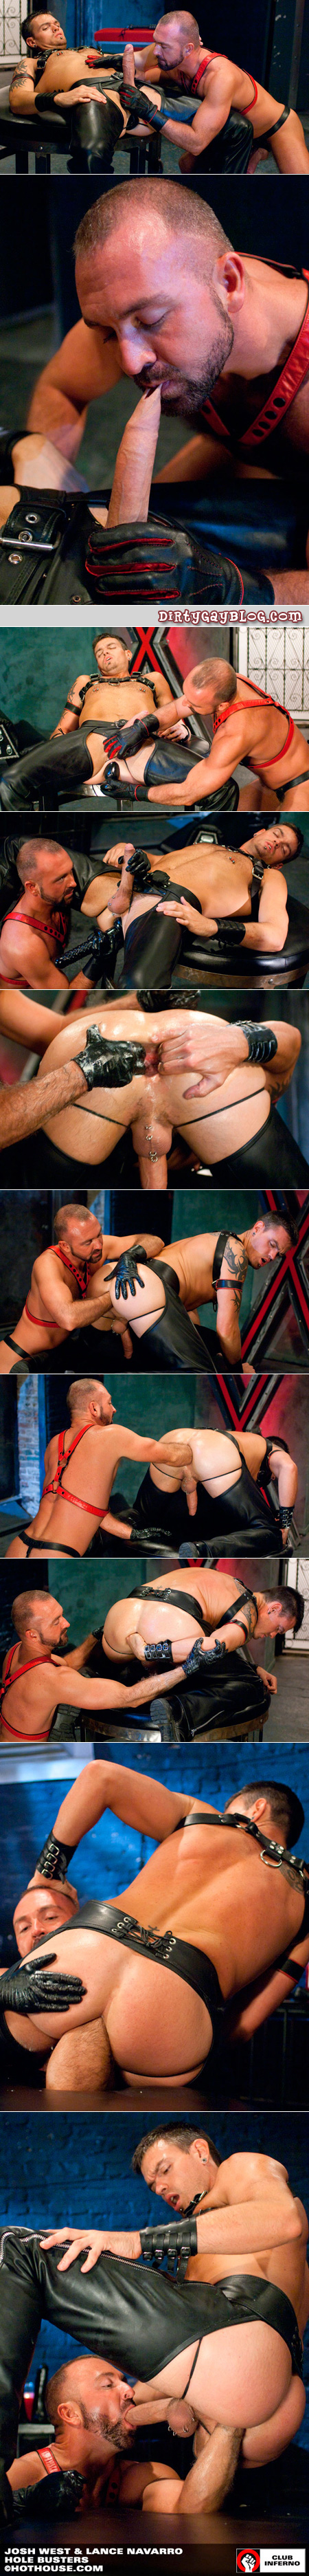 Two experienced leather men enjoy the limits of fisting, dildoes and male ass play together.